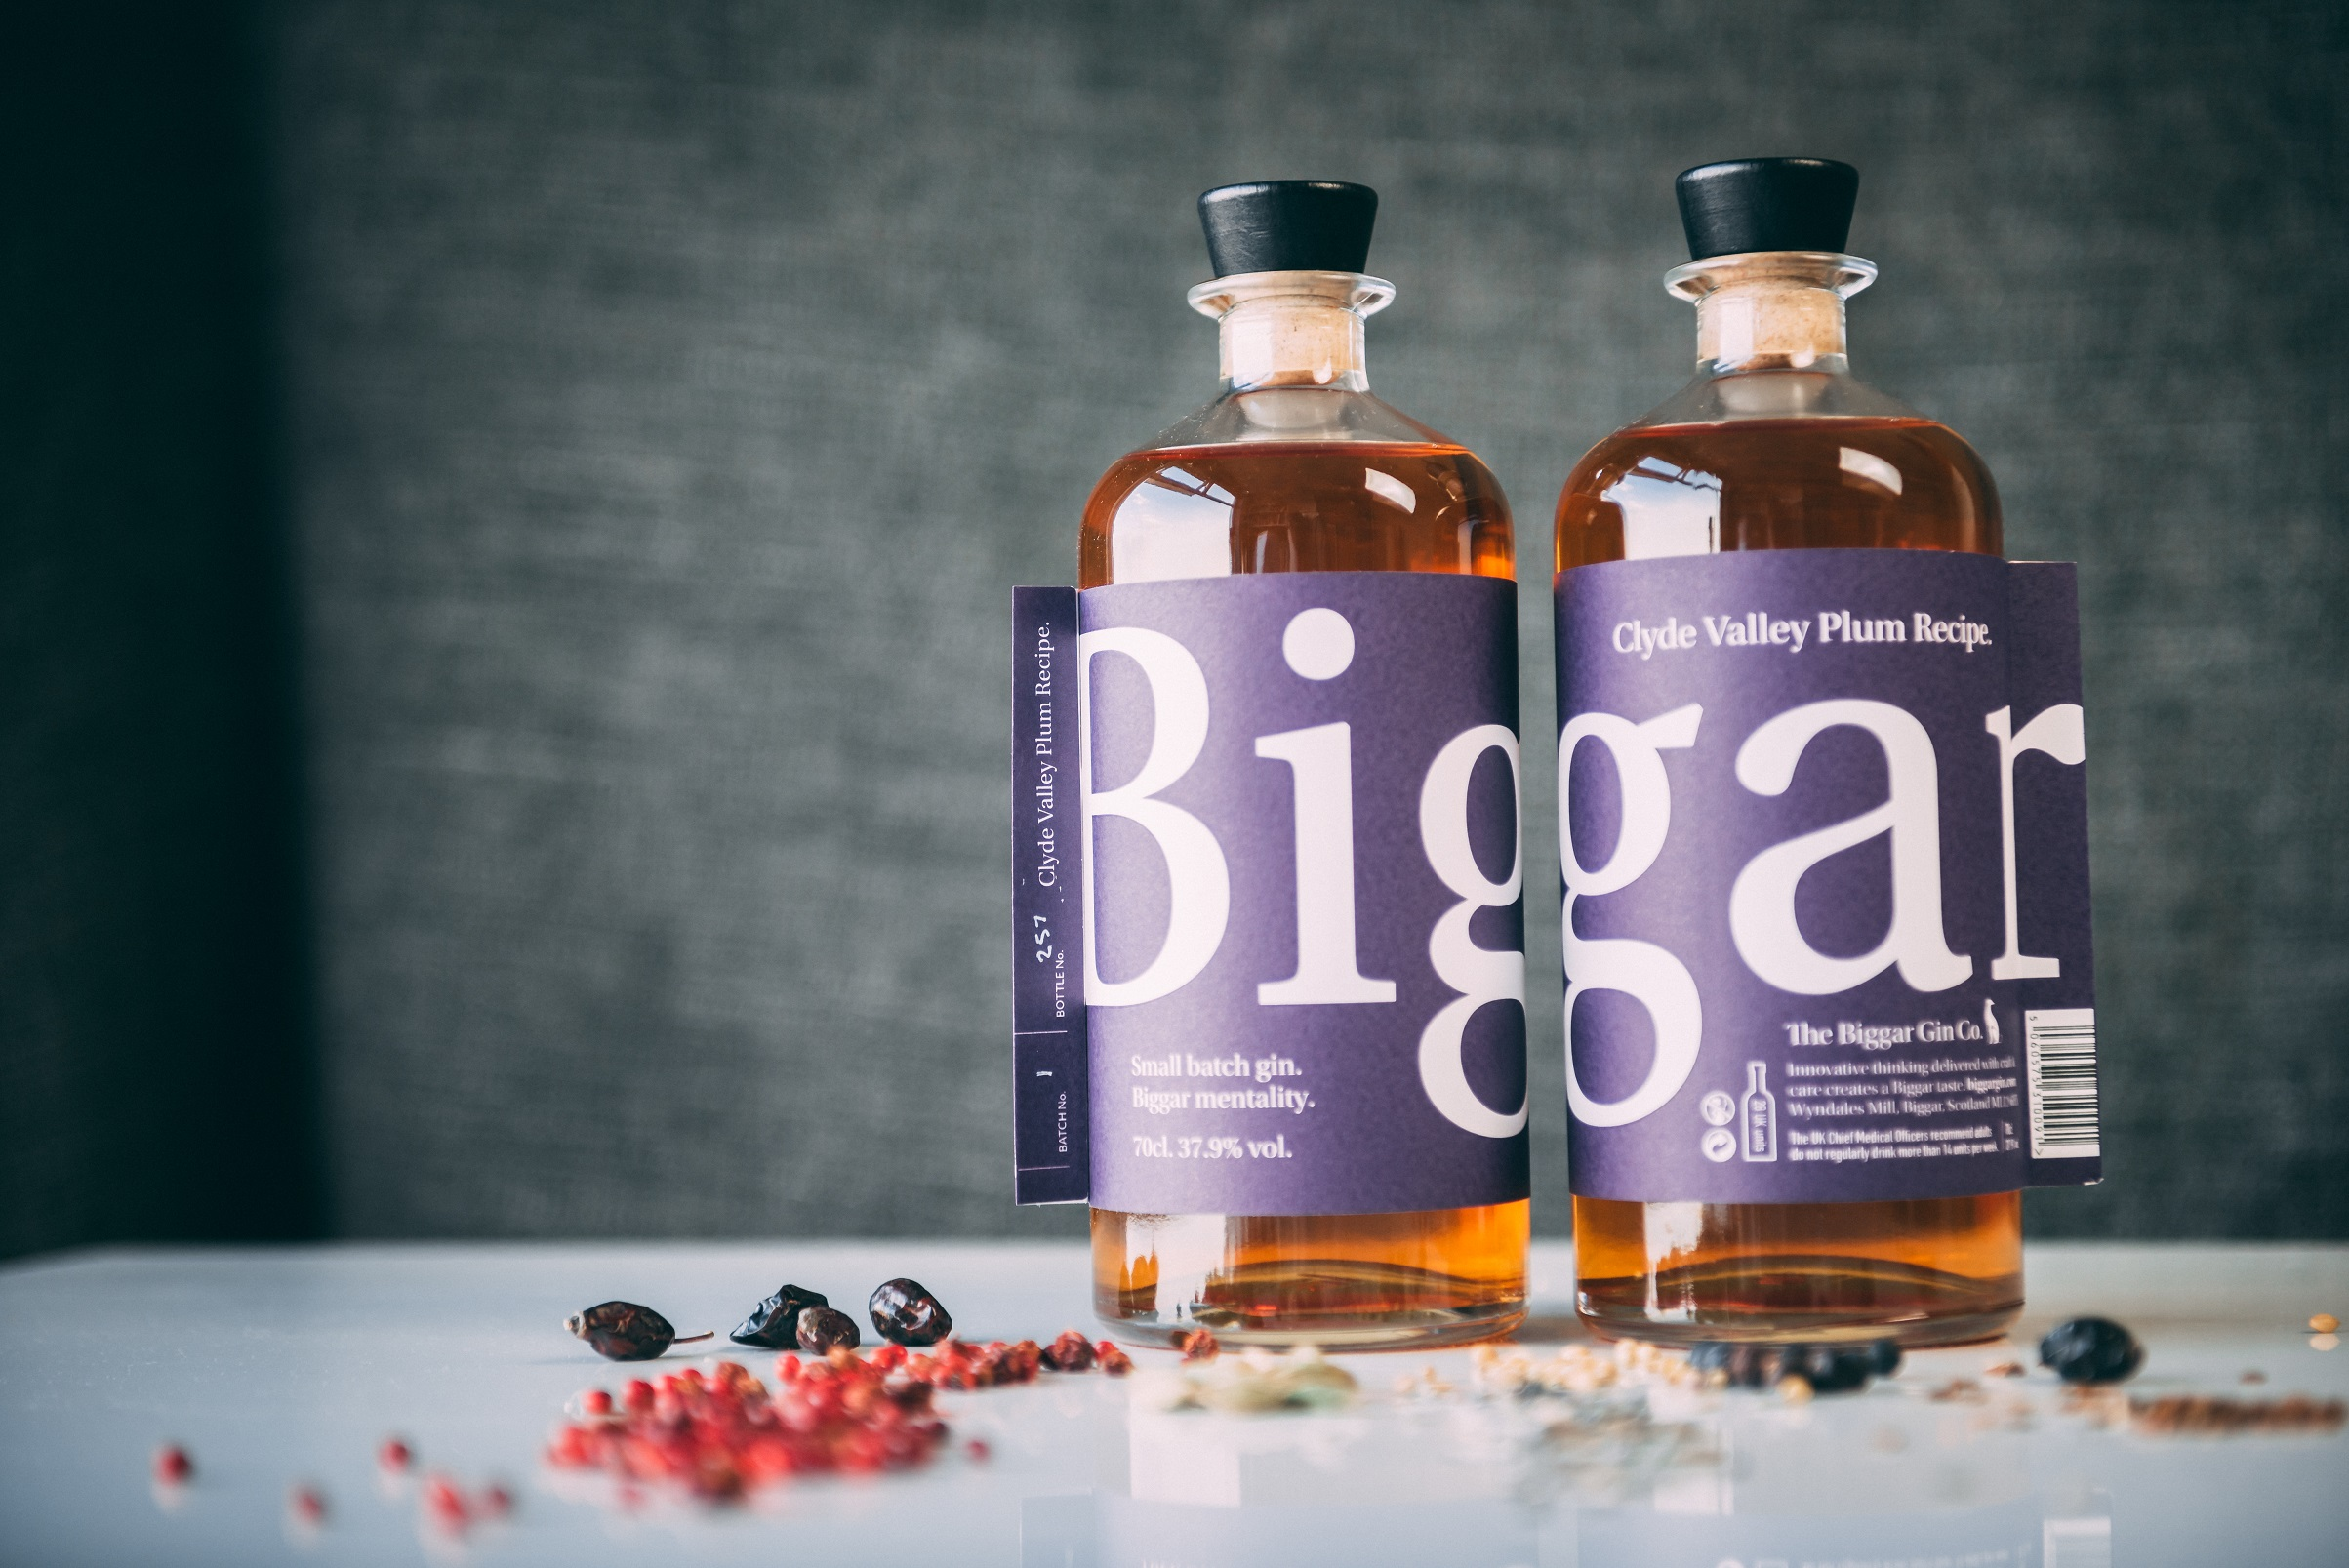 Biggar Clyde Valley Plum Gin